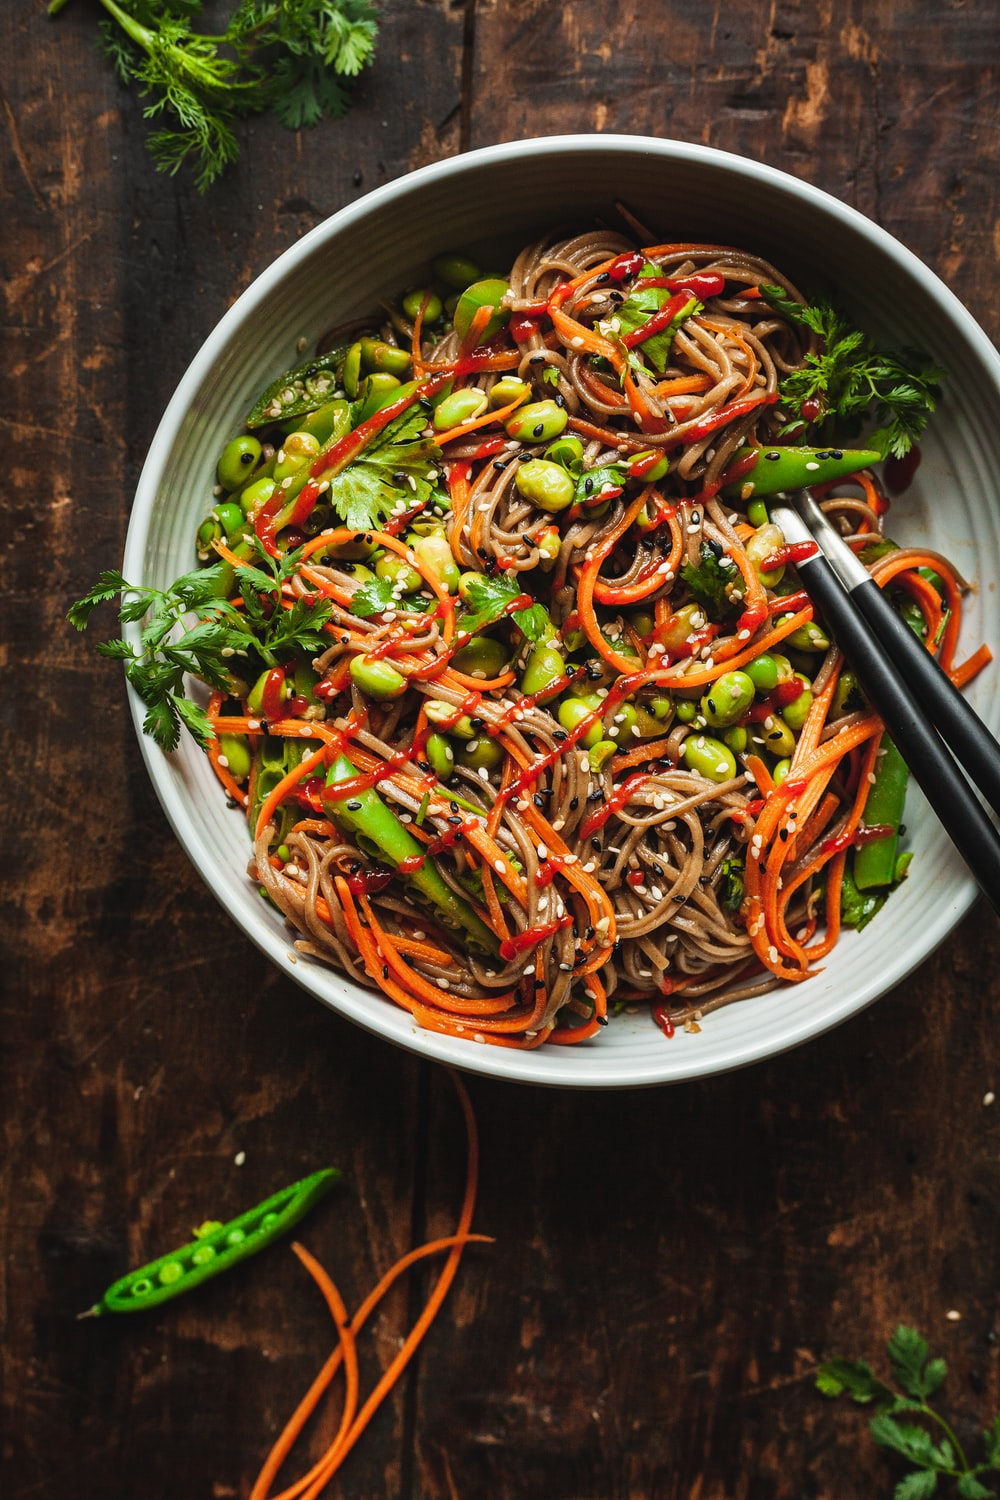 cooked noodles with vegetables